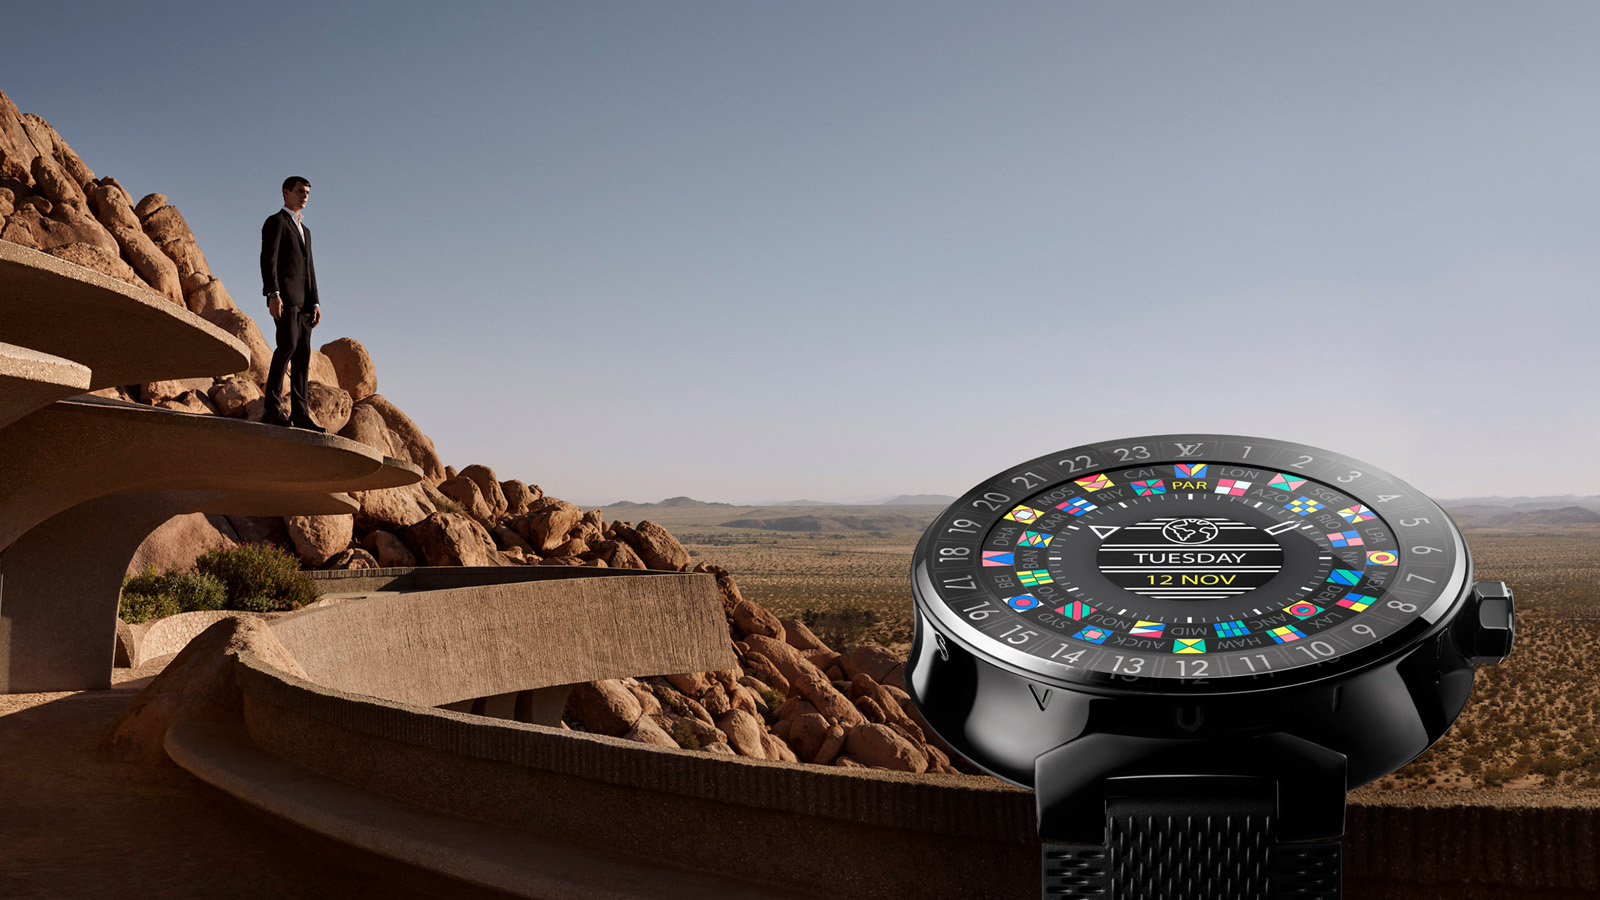 Louis Vuitton Launches Its First Luxury Smartwatch: Tambour Horizon